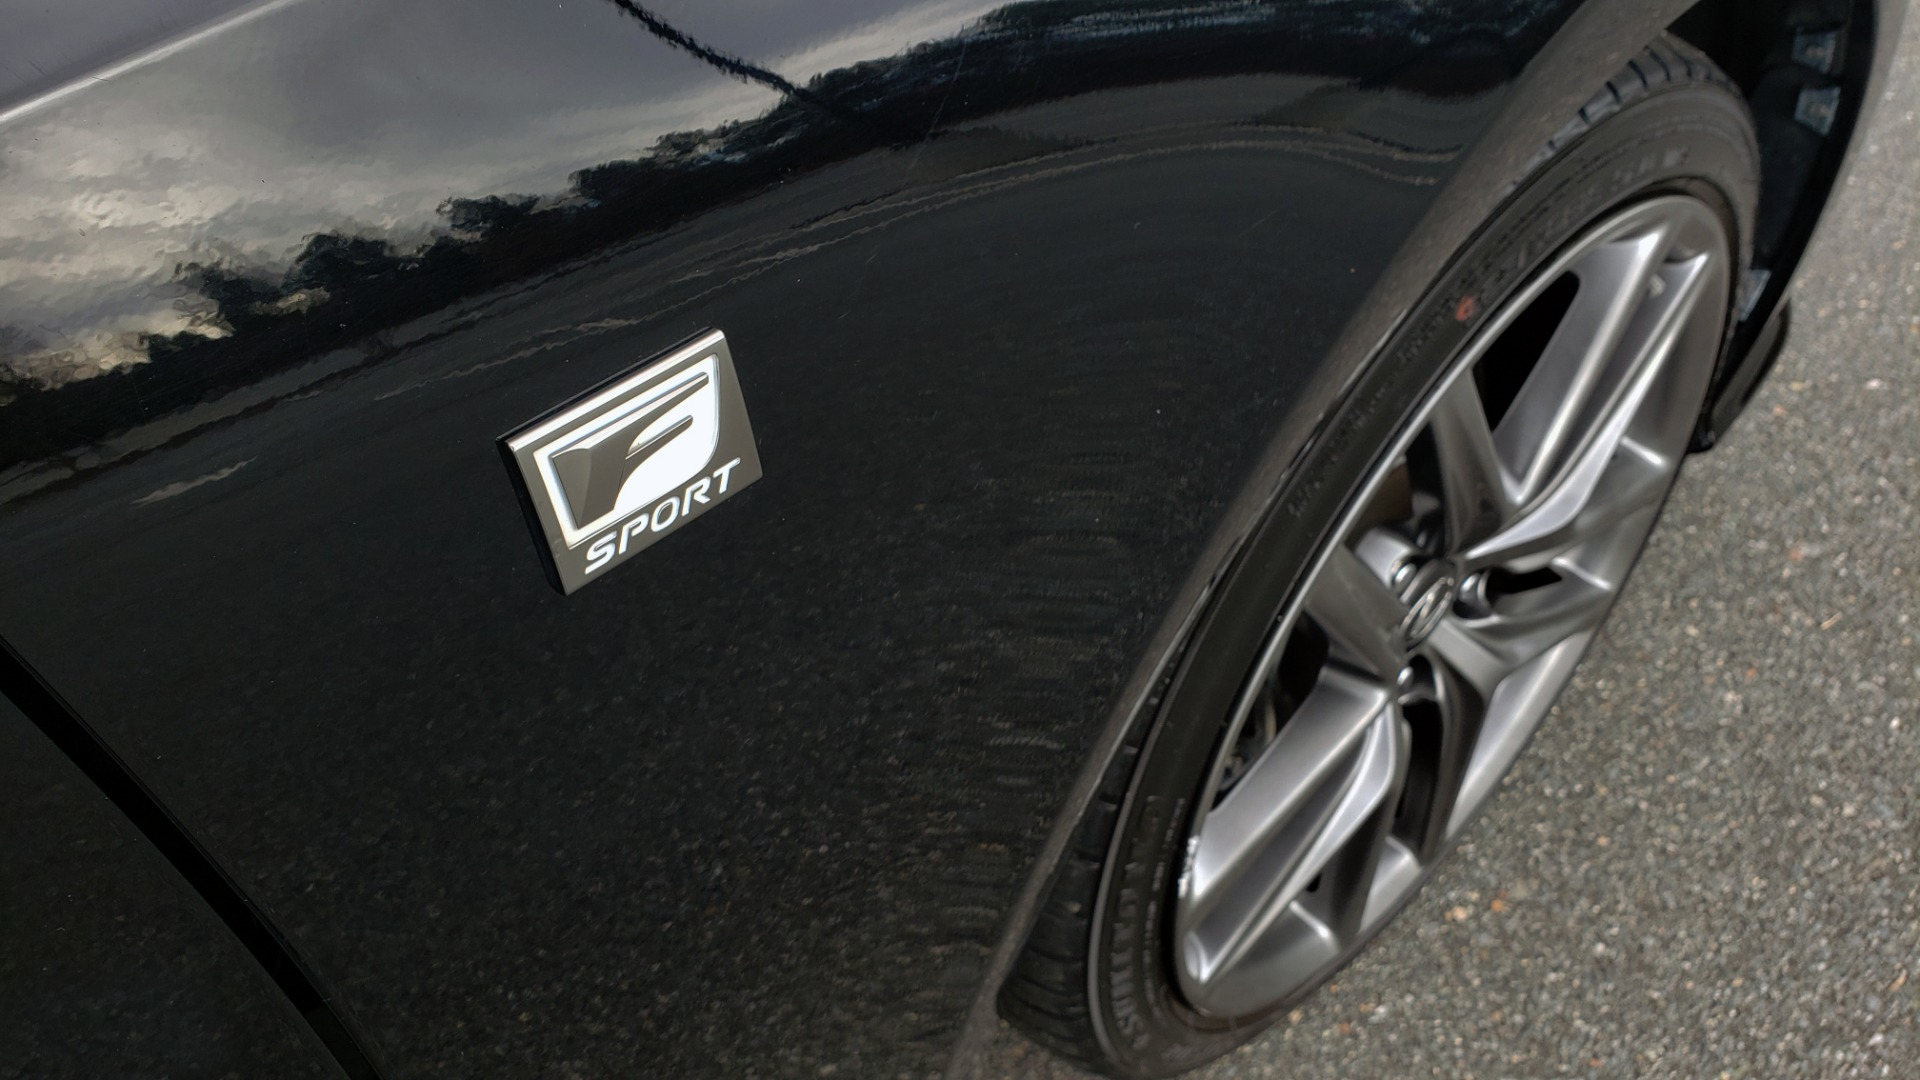 Used 2015 Lexus IS 250 F-SPORT / BLIND SPOT MON / SUNROOF / REARVIEW for sale Sold at Formula Imports in Charlotte NC 28227 9